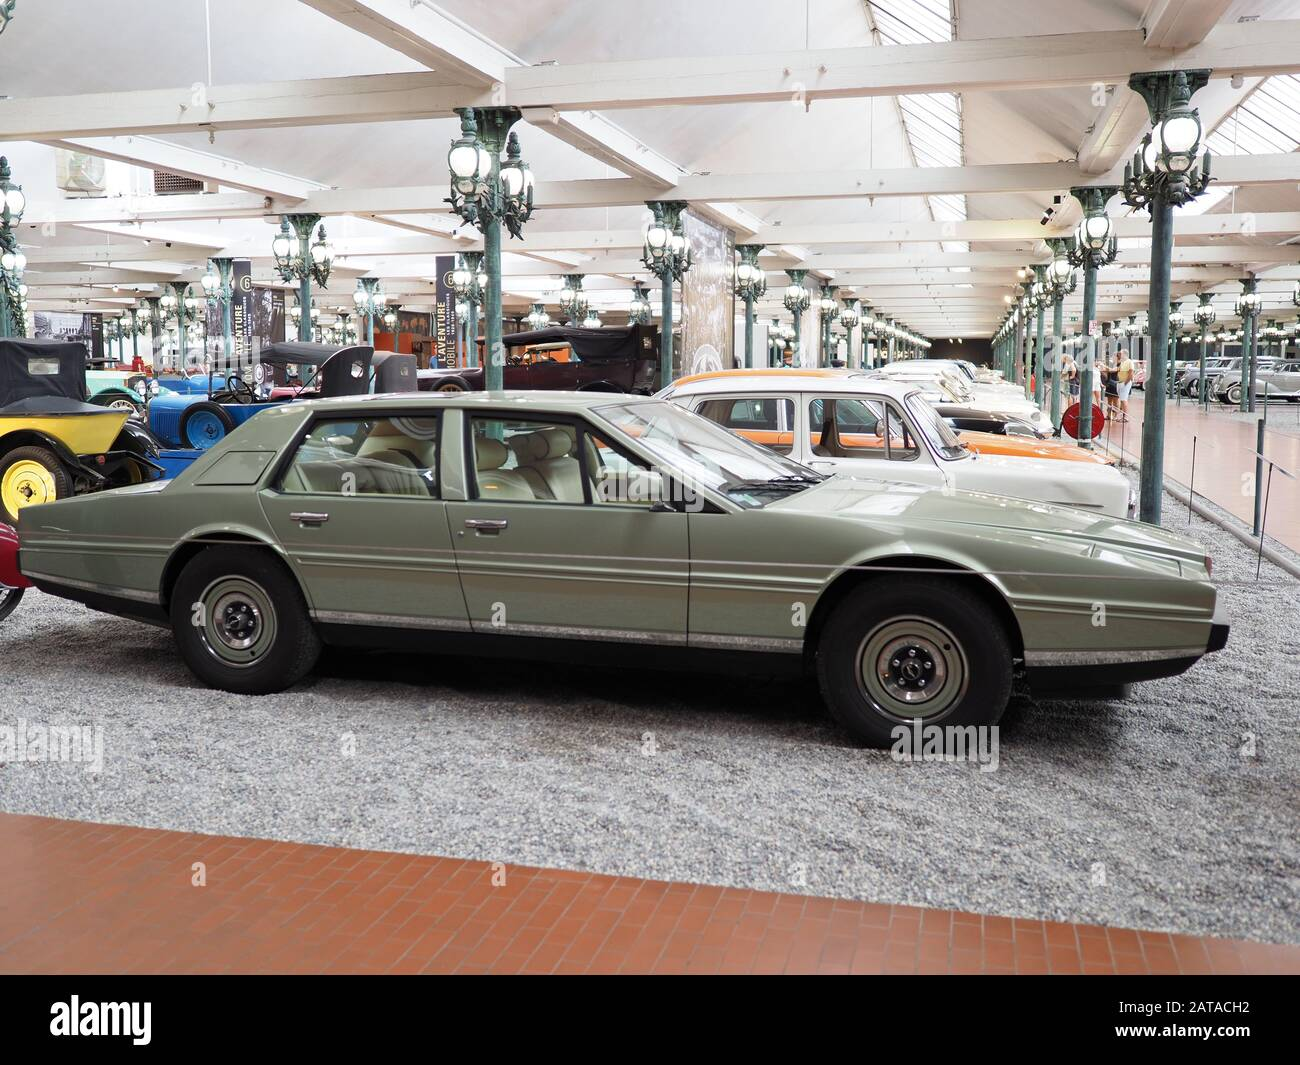 Side Of Aston Martin Lagonda Series 2 From 1982 Produced In 1976 1985 In European Mulhouse City France Stock Photo Alamy